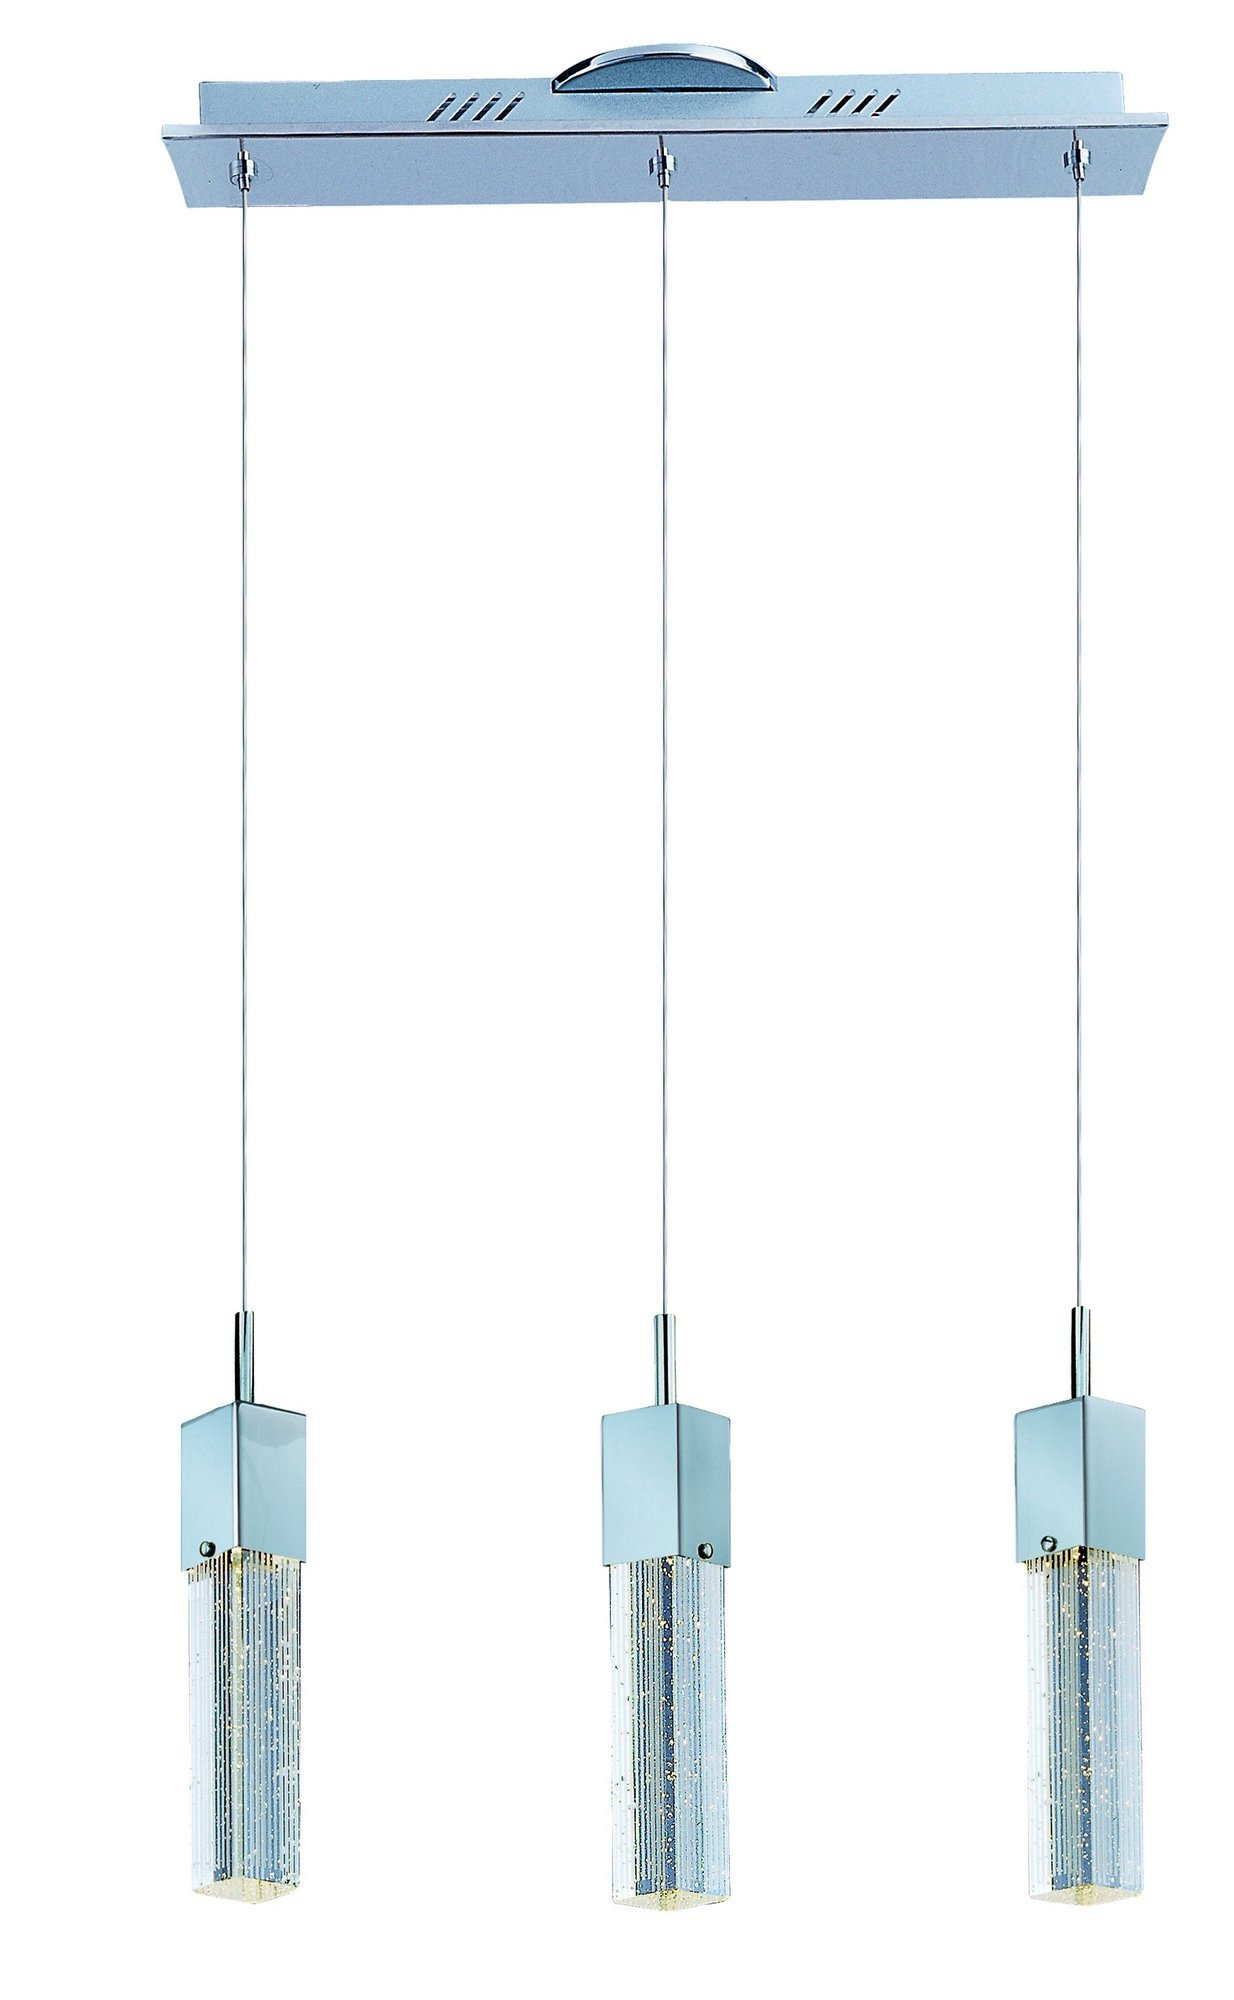 ET2 E22763-89PC Fizz III 3-Light LED Linear Pendant, Polished Chrome Finish, Etched/Bubble Glass, PCB LED Bulb, Wet Safety Rated, 3000K Color Temp., Shade Material, 1600 Rated Lumens by ET2 Lighting (Image #1)